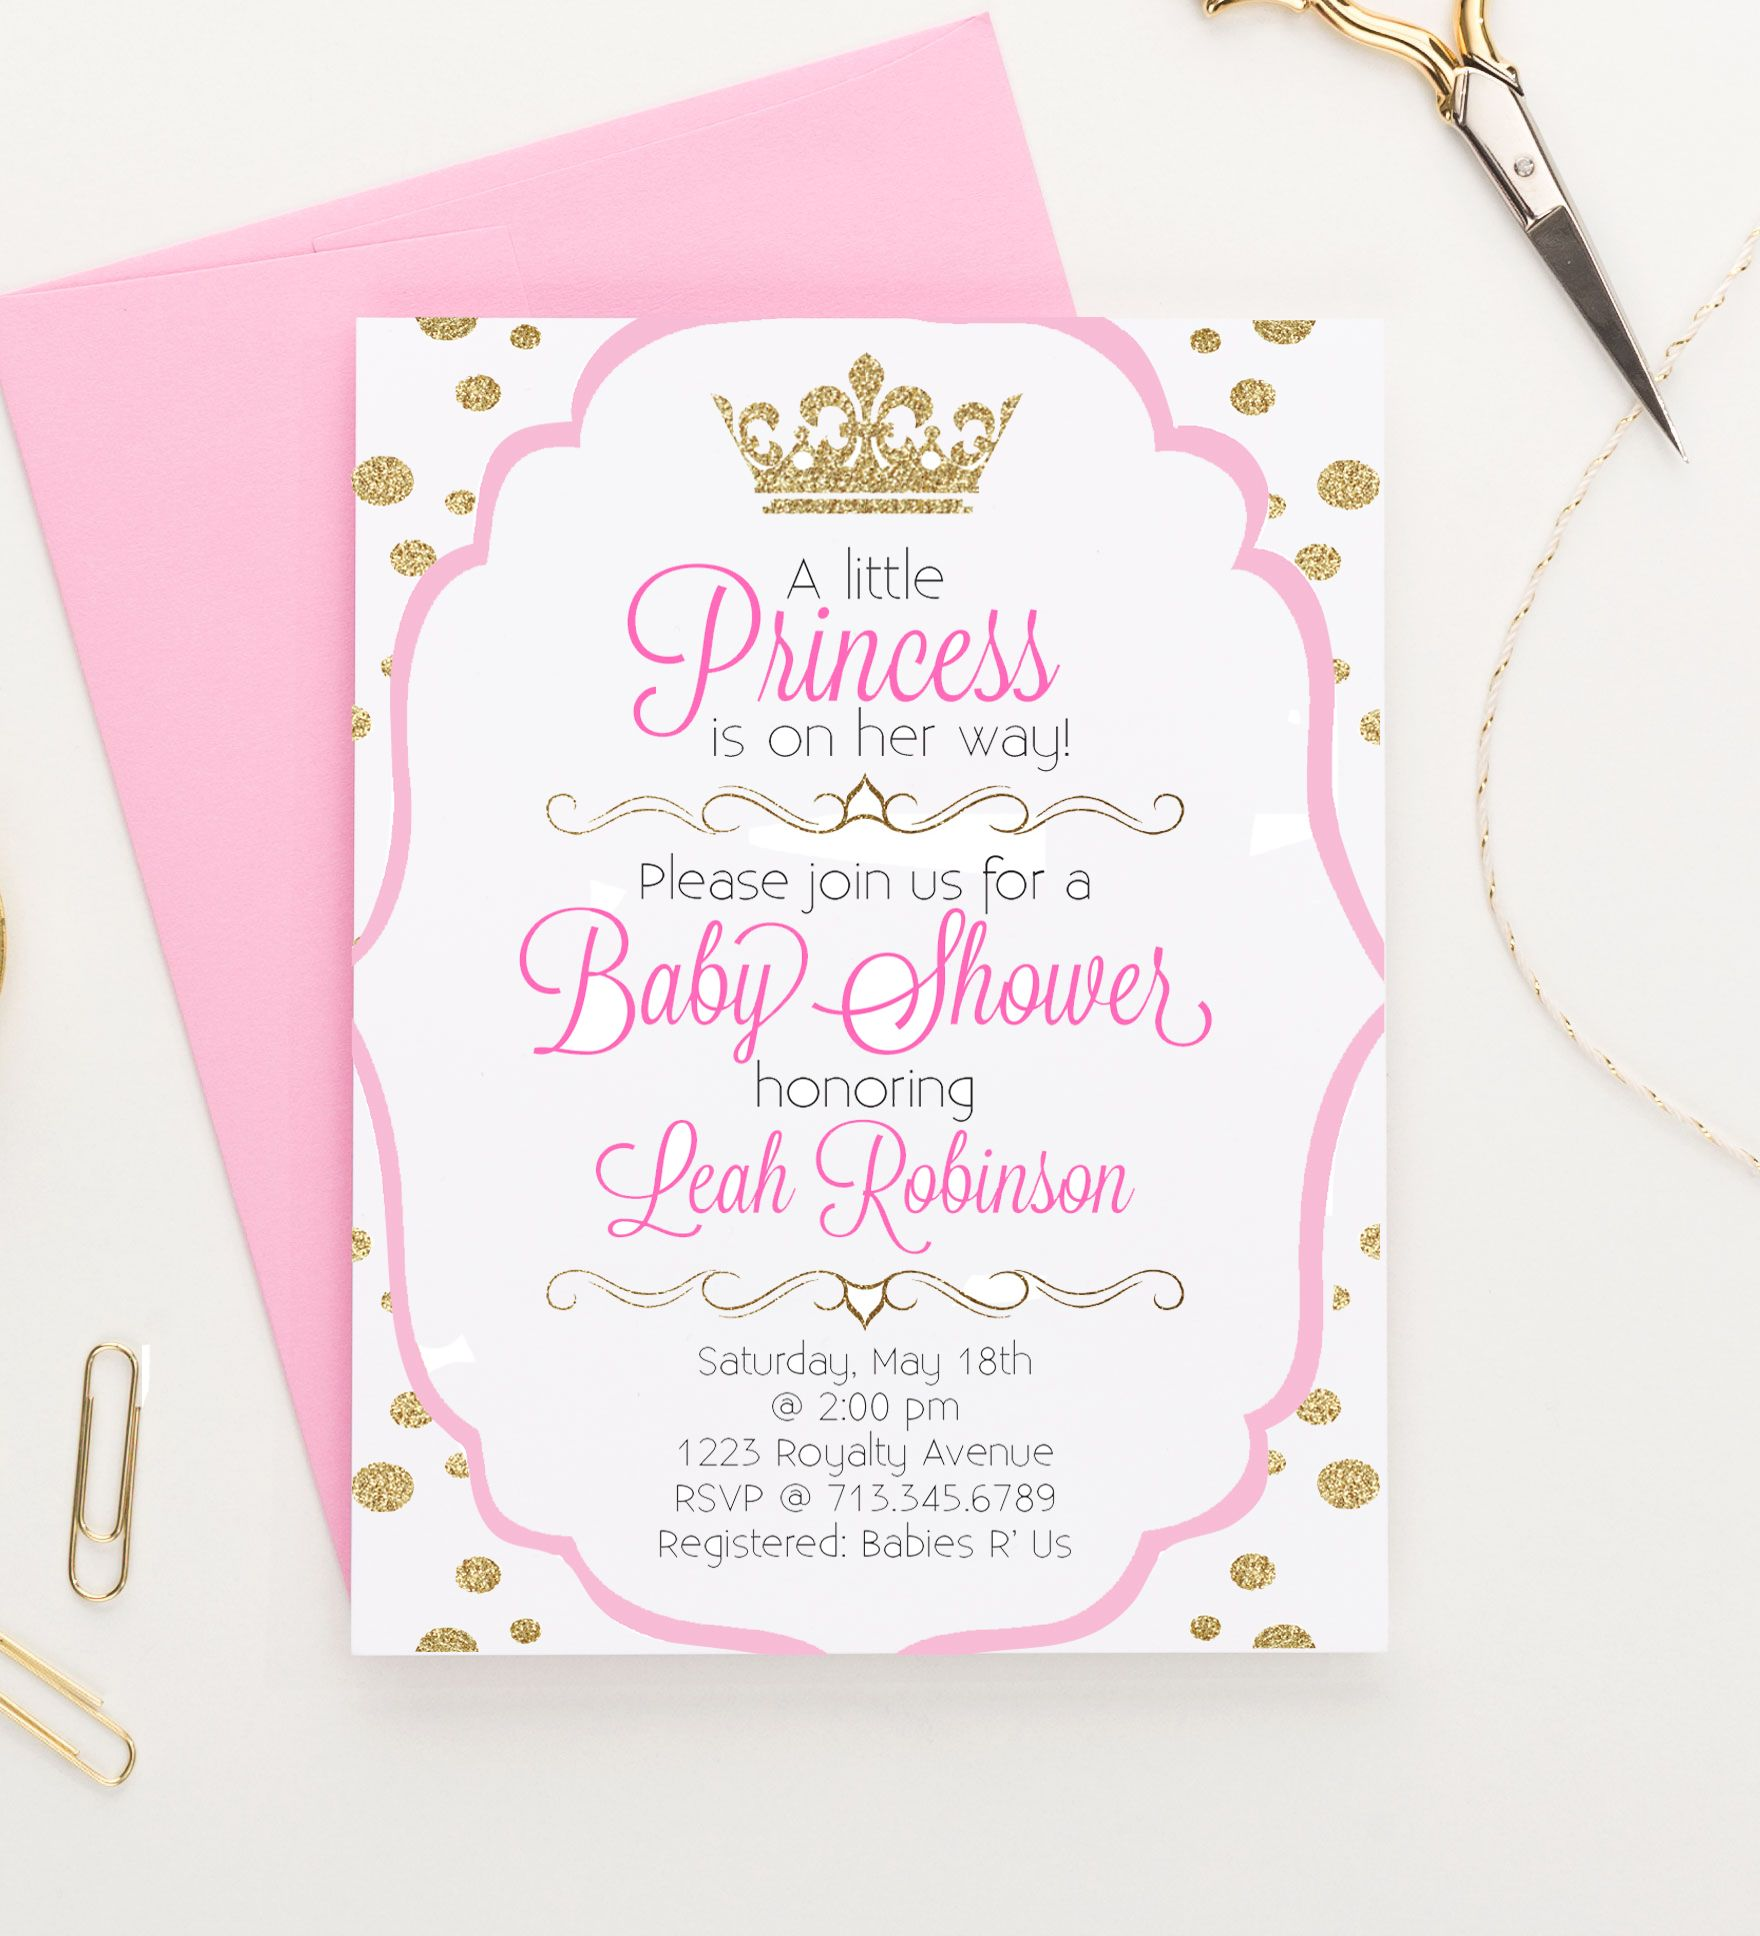 Princess Baby Shower Invitations, Little Princess Baby Shower ...